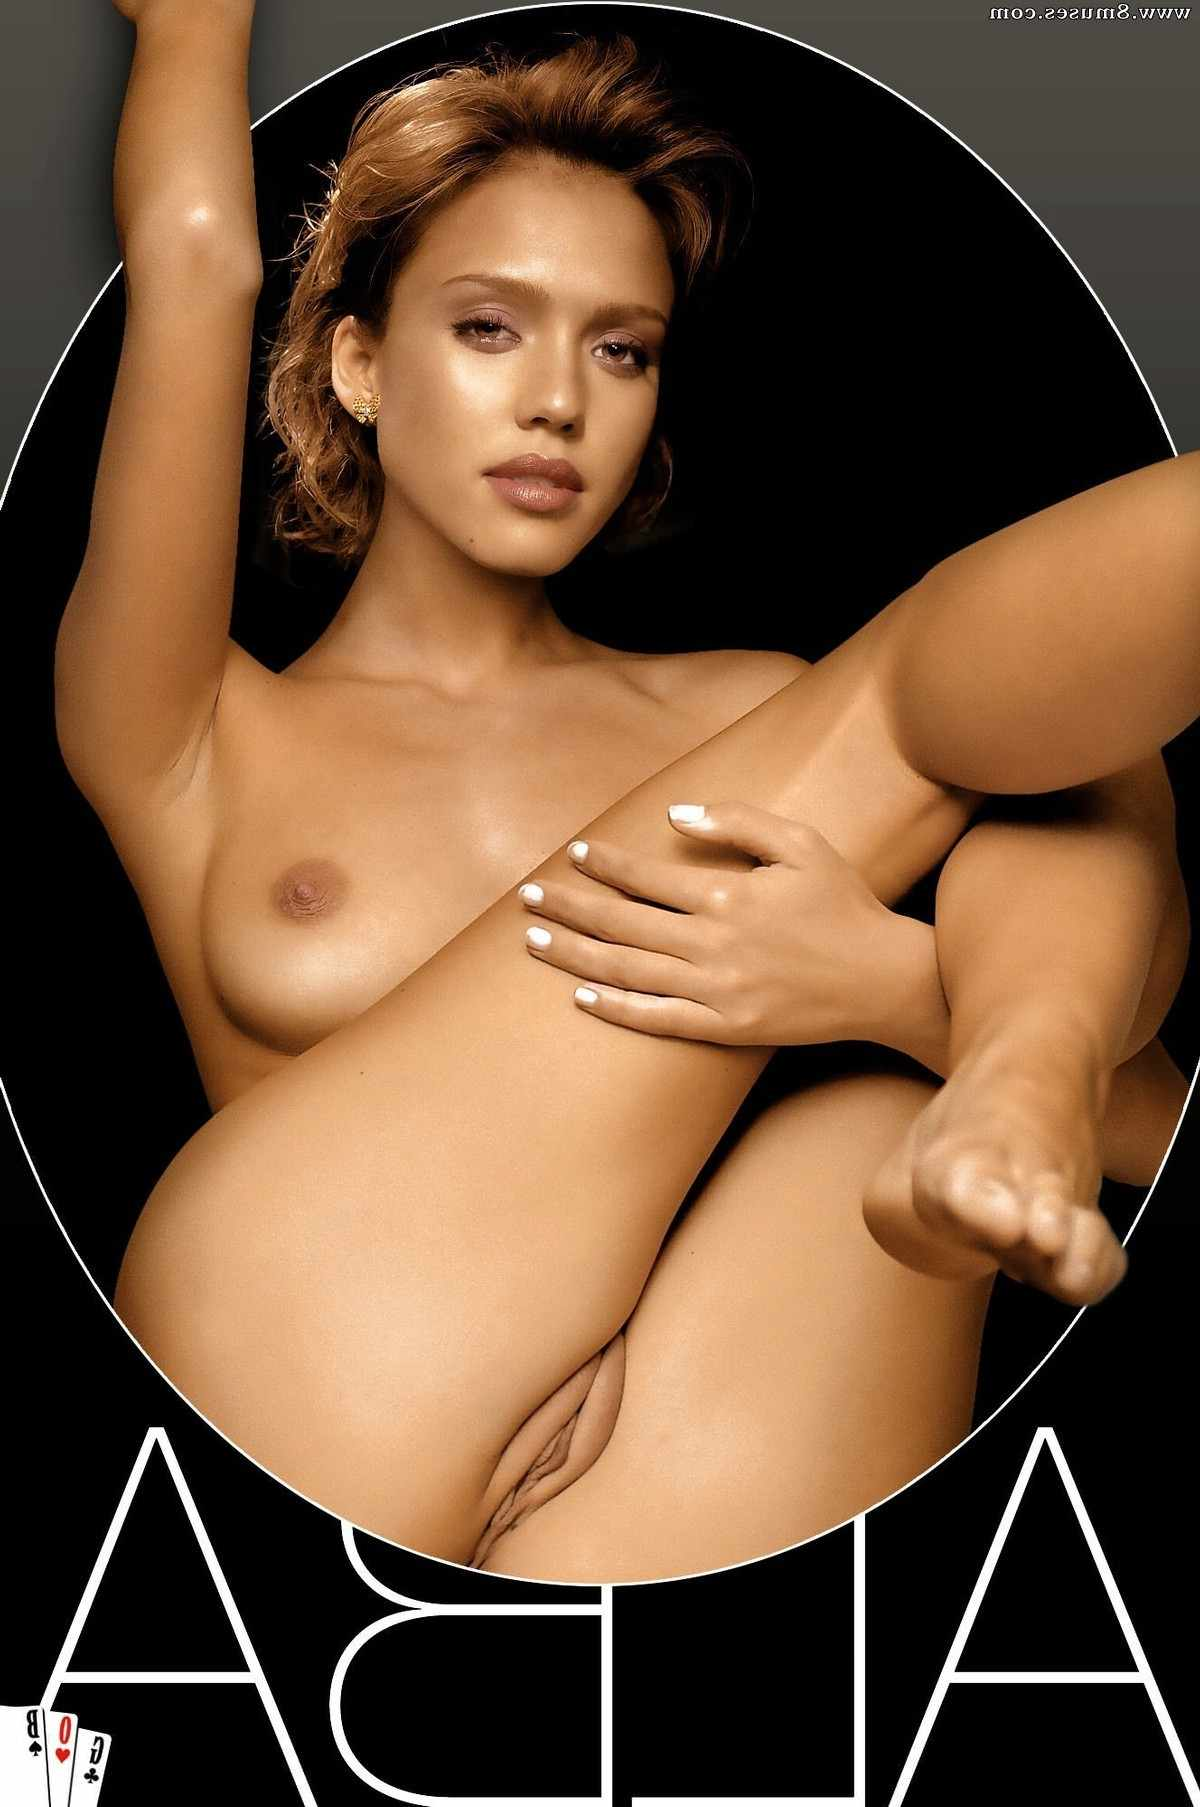 Fake-Celebrities-Sex-Pictures/Jessica-Alba Jessica_Alba__8muses_-_Sex_and_Porn_Comics_361.jpg